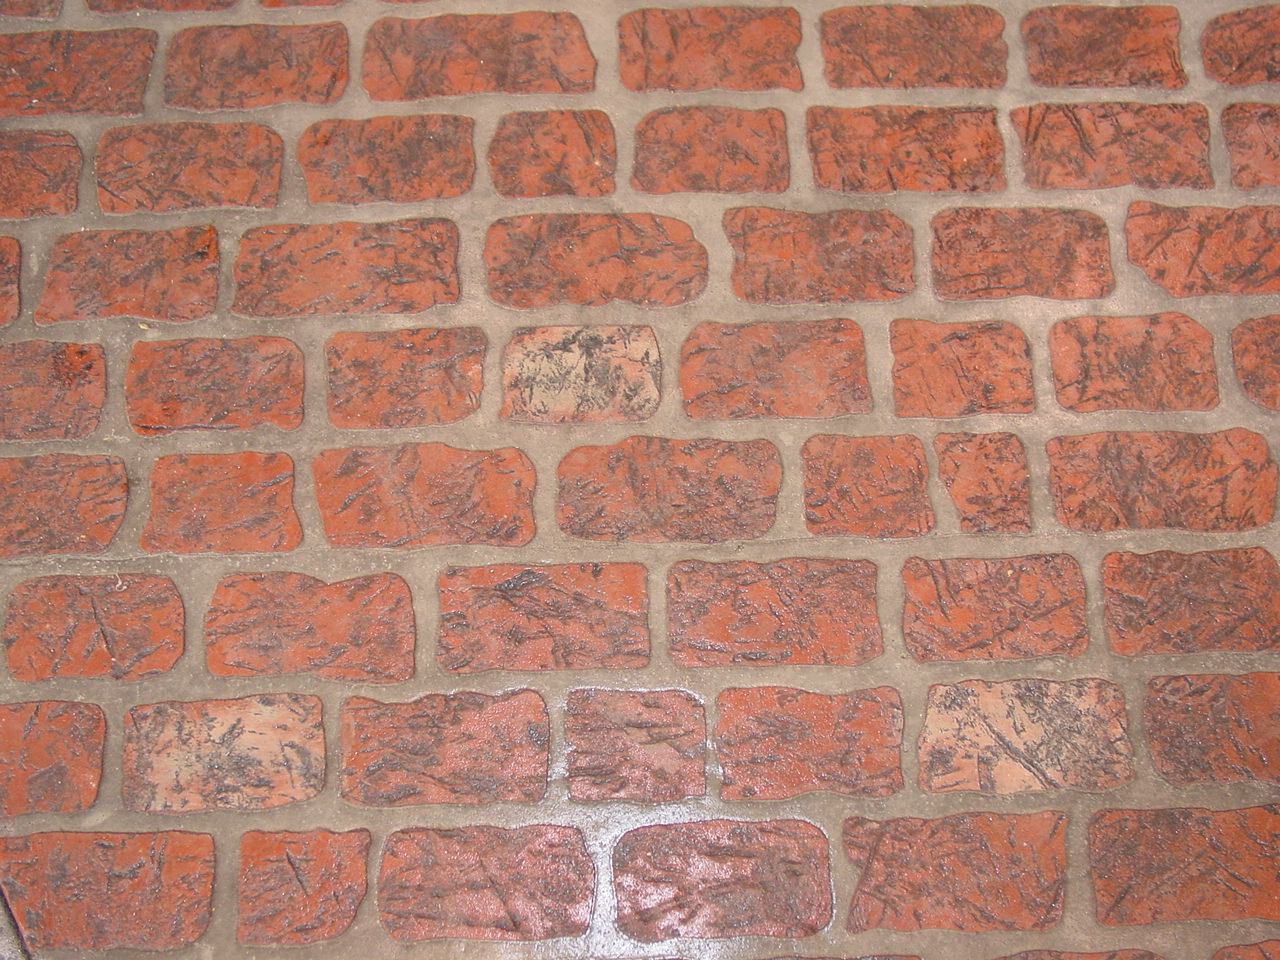 Old Chicago Brick Stenciled Concrete with Brick Red Color, Sunset Rose splash with Charcoal Gray Release